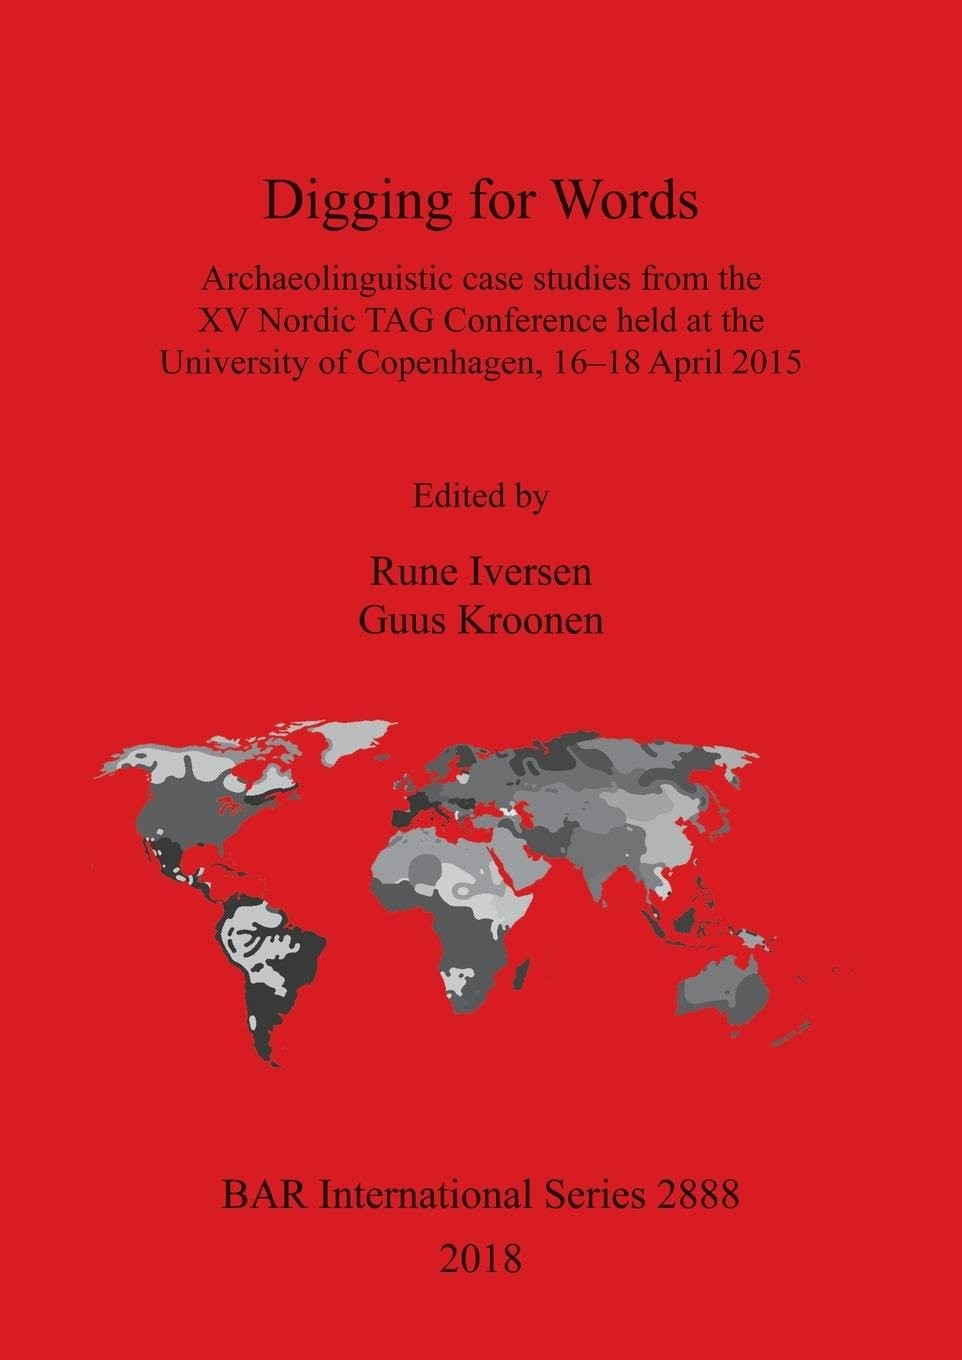 Book cover showing a red background with a black and grey map of the contents.